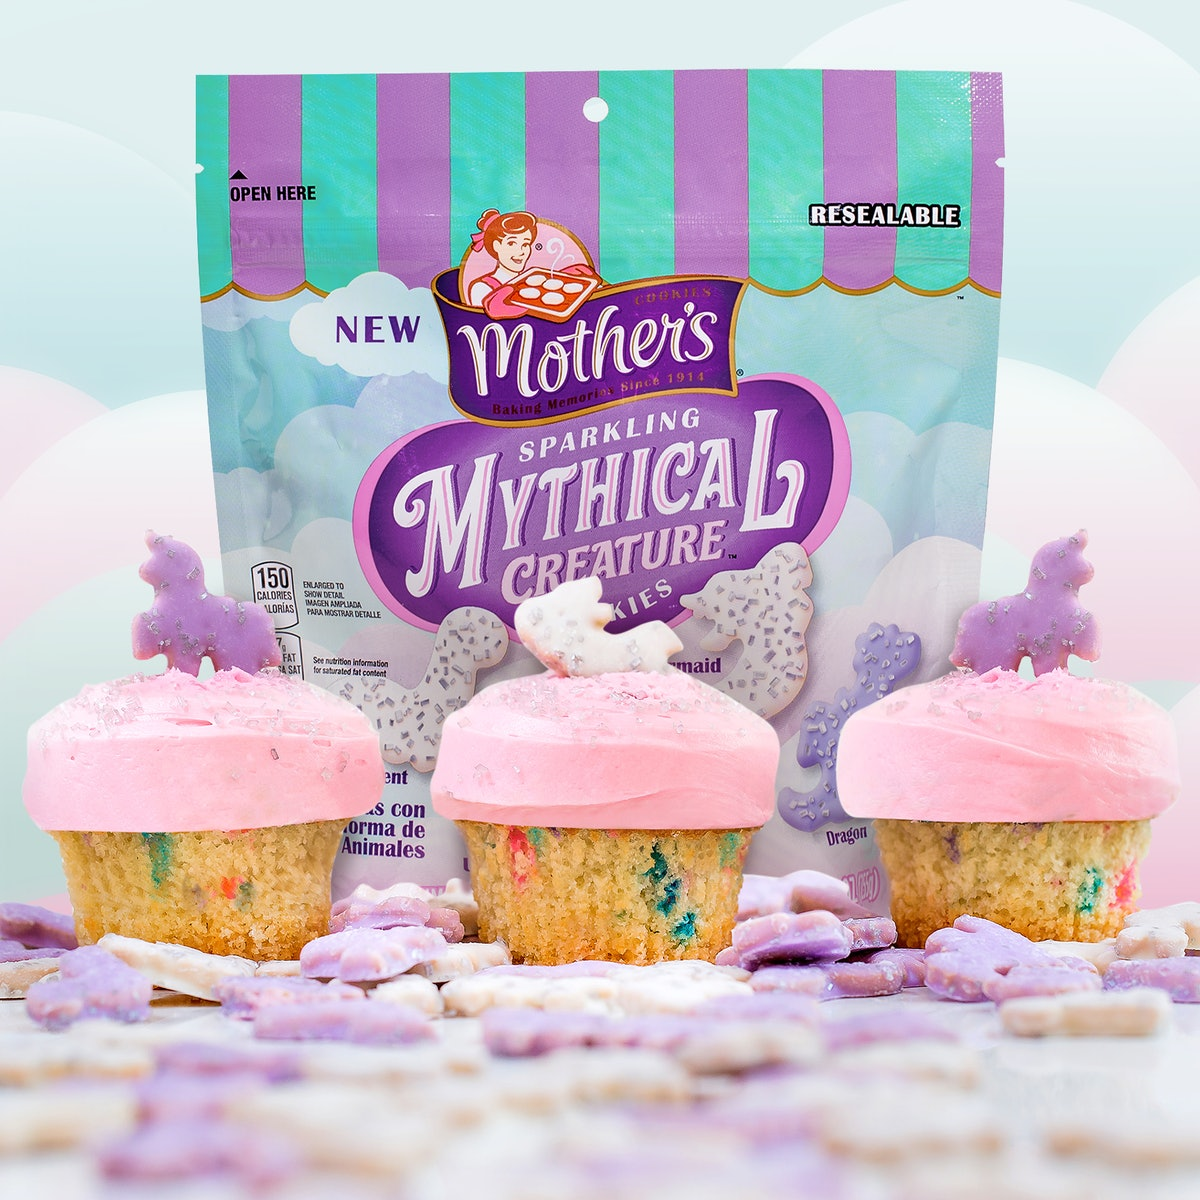 Mother's Sparkling Mythical Creature cookies exist, and they're shaped like unicorns.